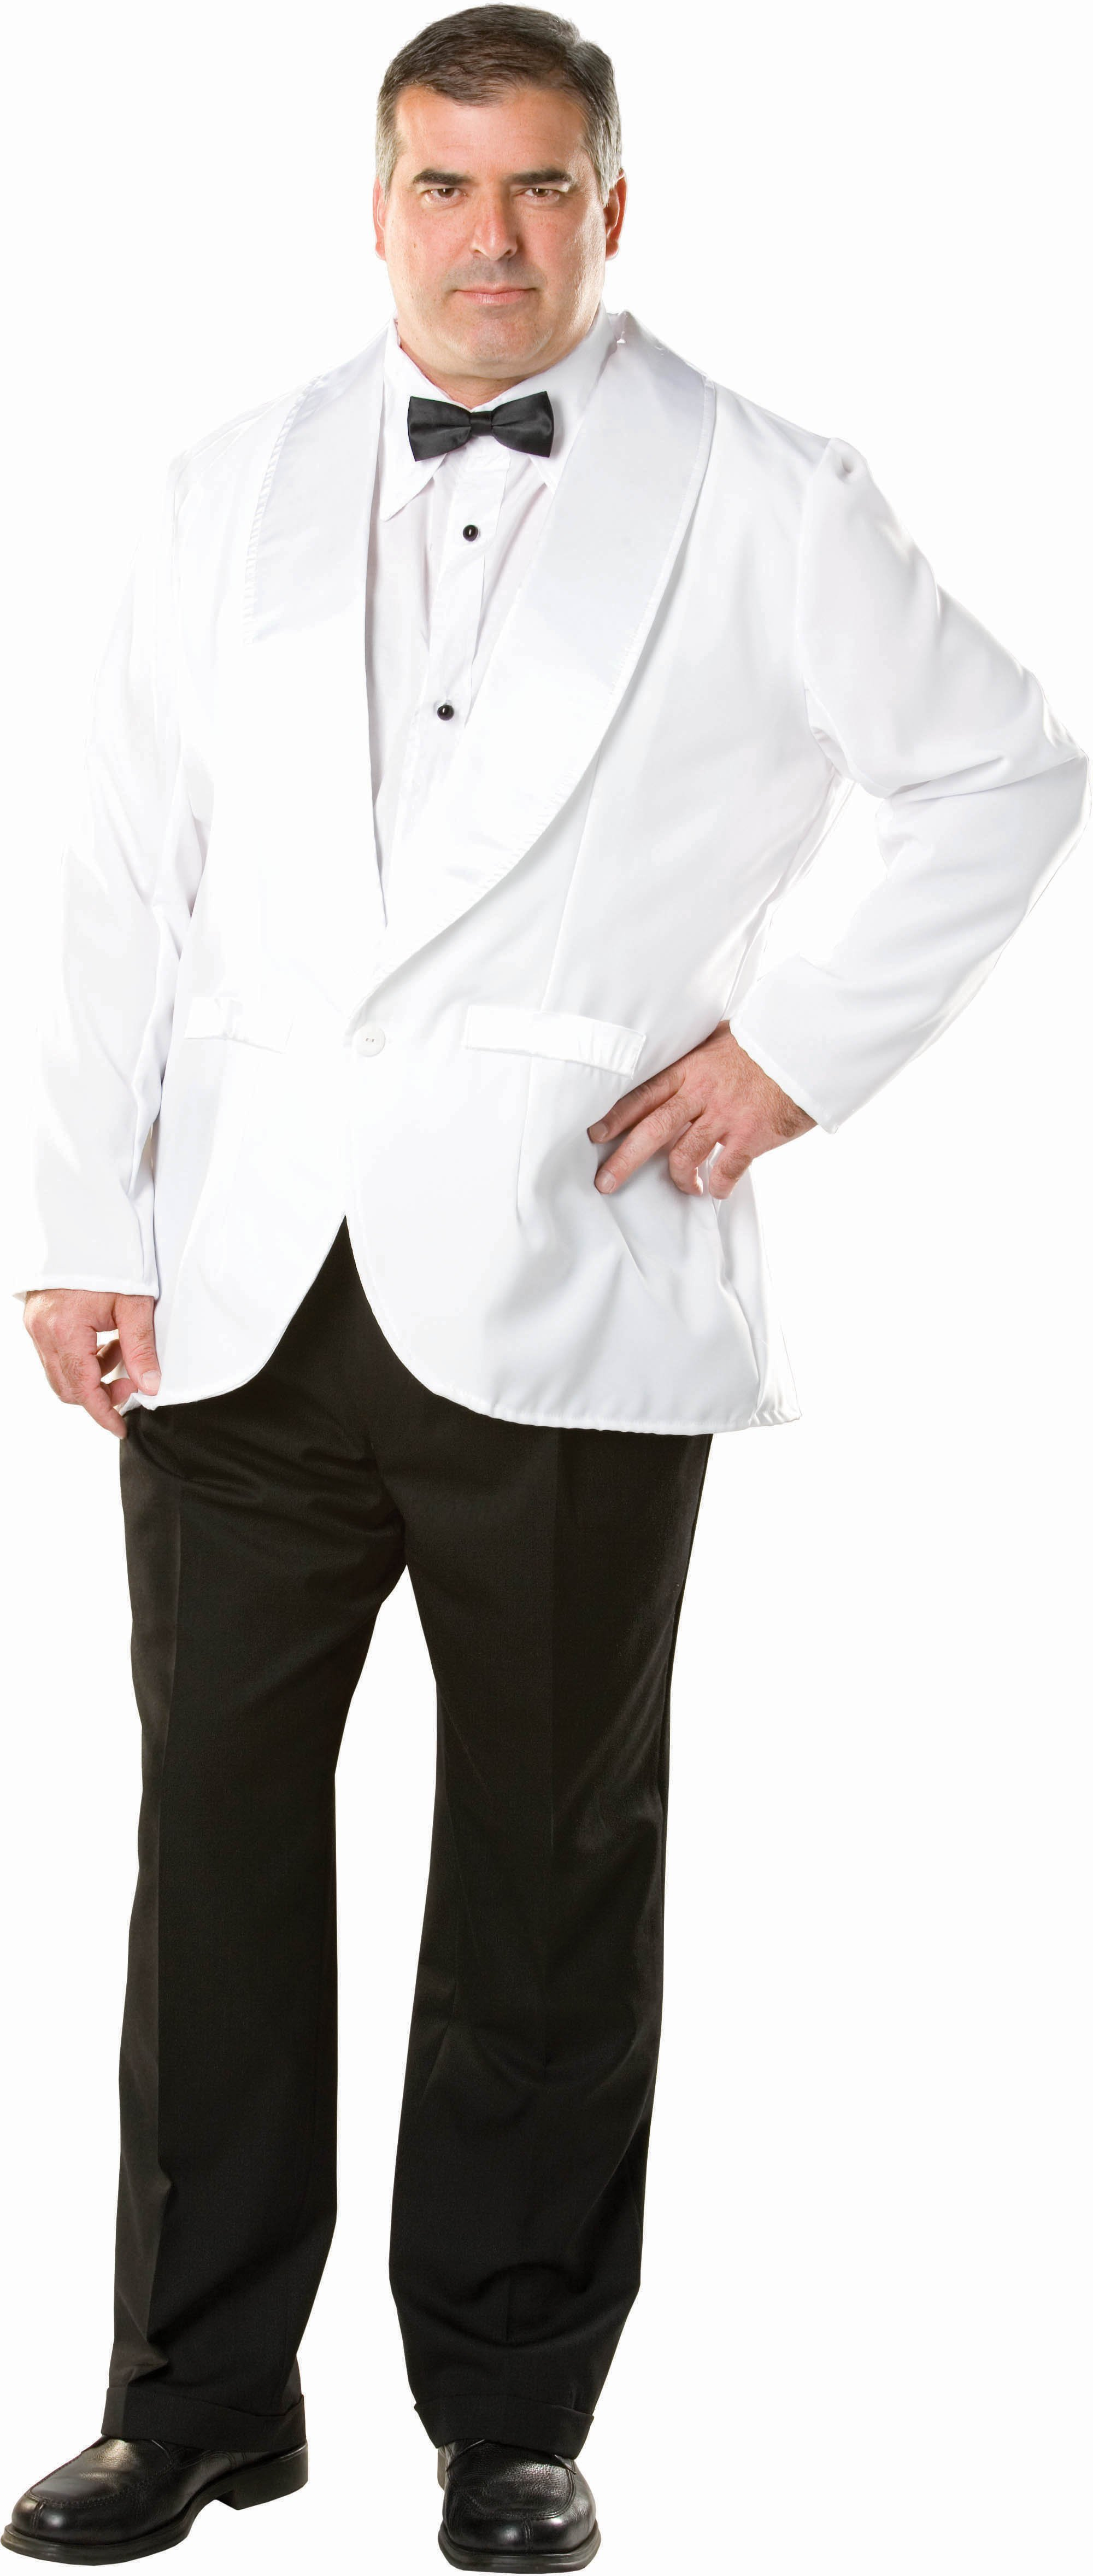 White Dinner Jacket Adult Plus Costume - DO NOT ACTIVATE